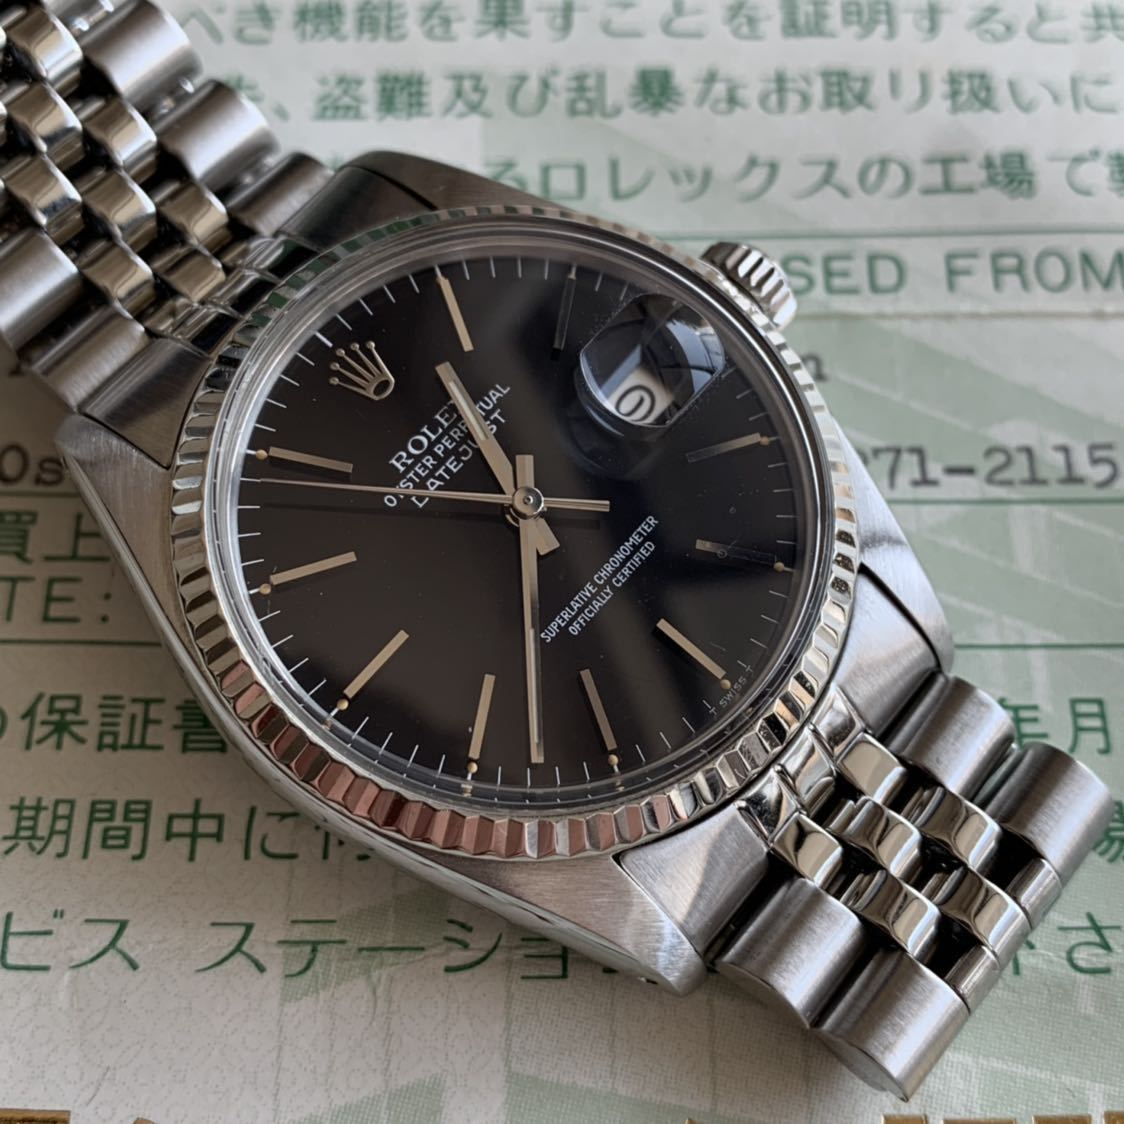 outlet store 144a4 fa3cb Rolex Date Just 16014 ロレックスデイトジャスト